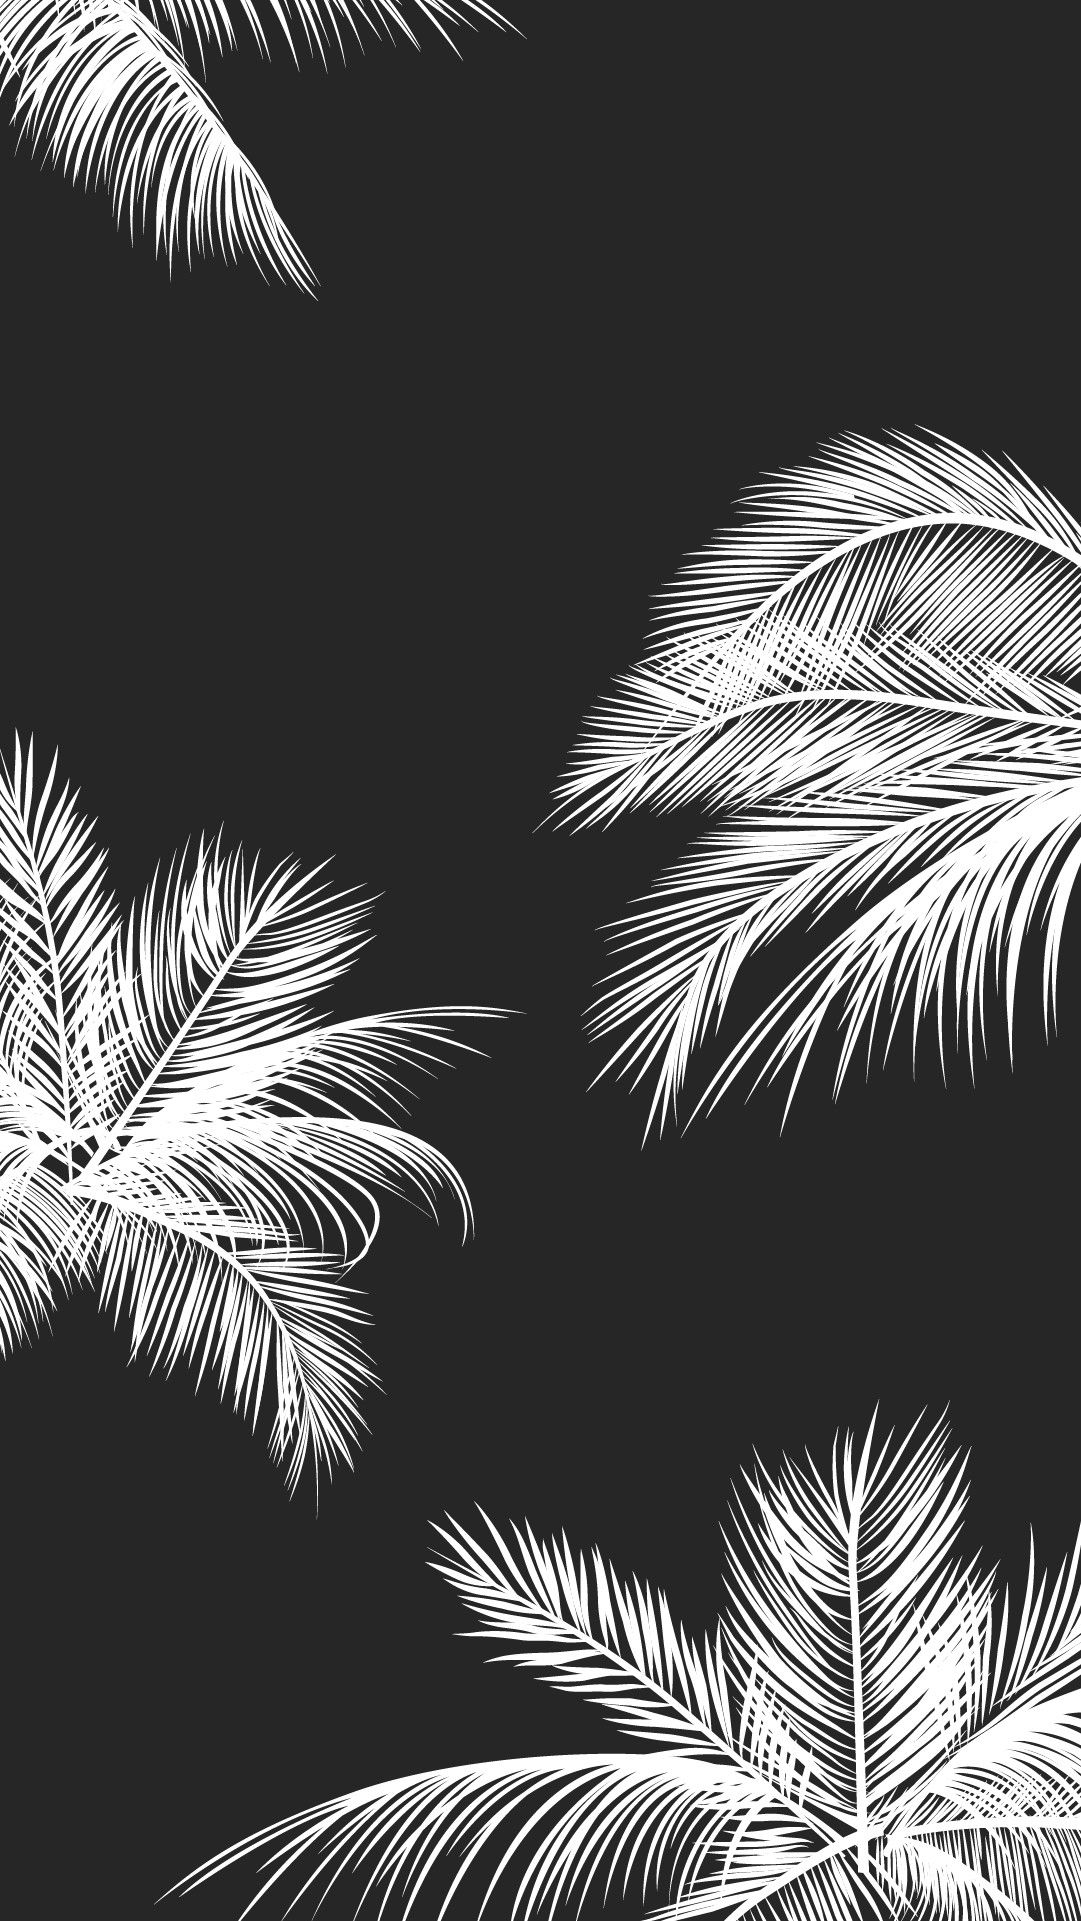 Cute Black And White Aesthetic Wallpapers Top Free Cute Black And White Aesthetic Backgrounds Wallpaperaccess